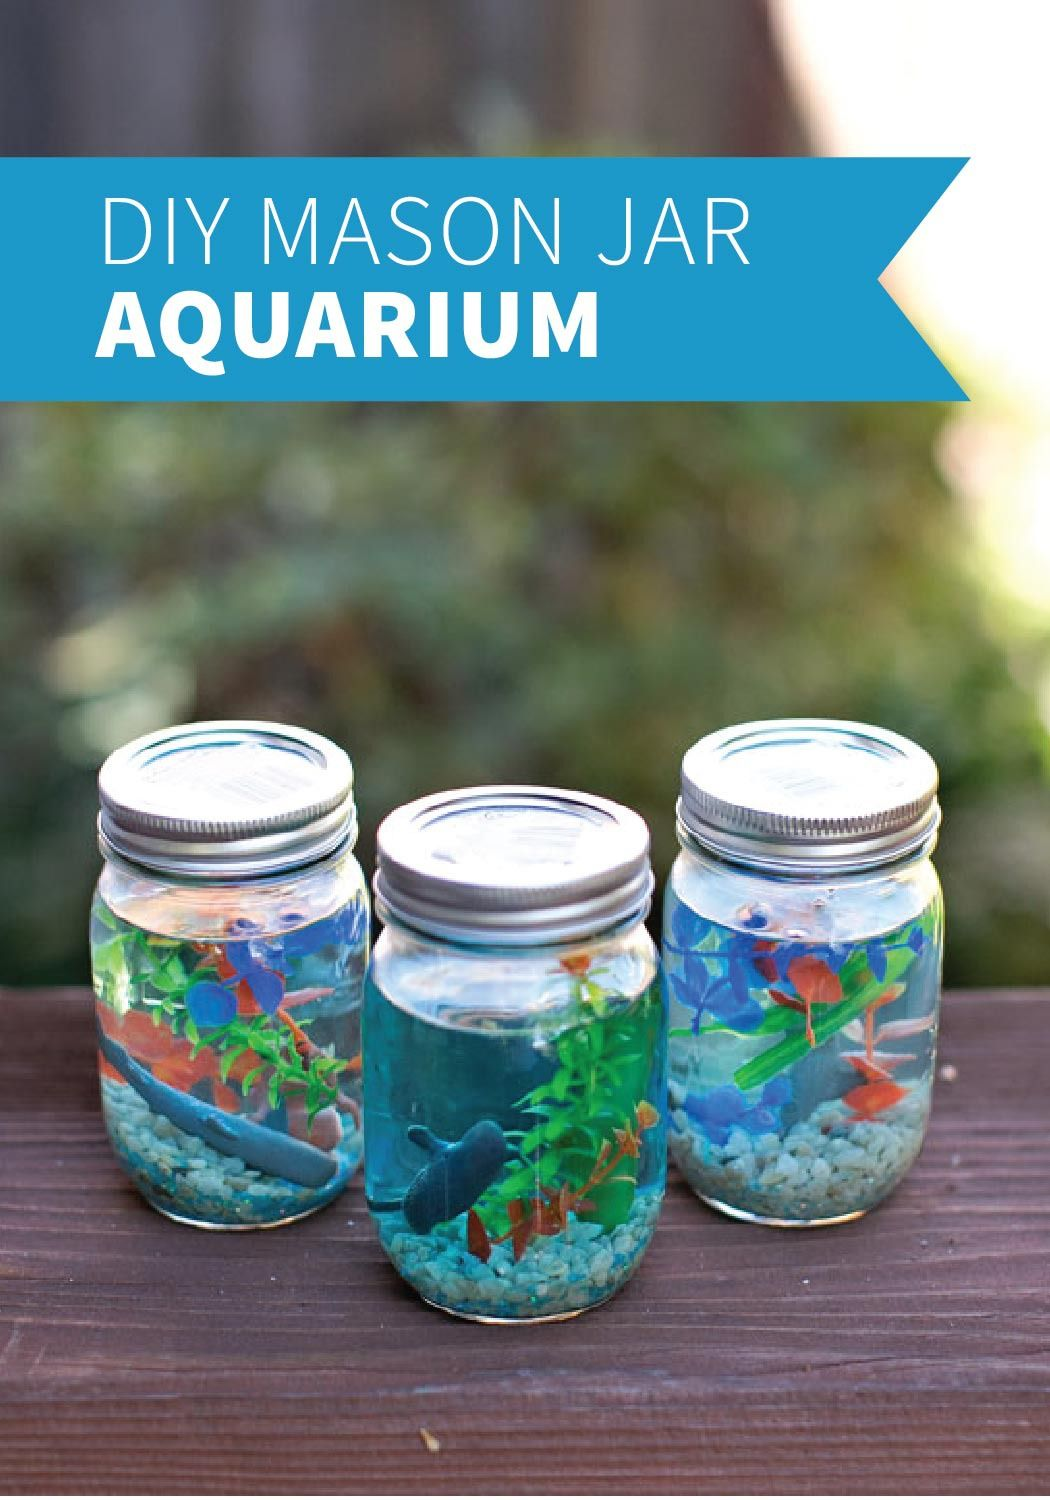 MAKE A MASON JAR AQUARIUM DIY Mason Jar Aquarium Kids Will Love To Help Make These Fun Aquariums And Youll How Cute They Look Inside Your Home